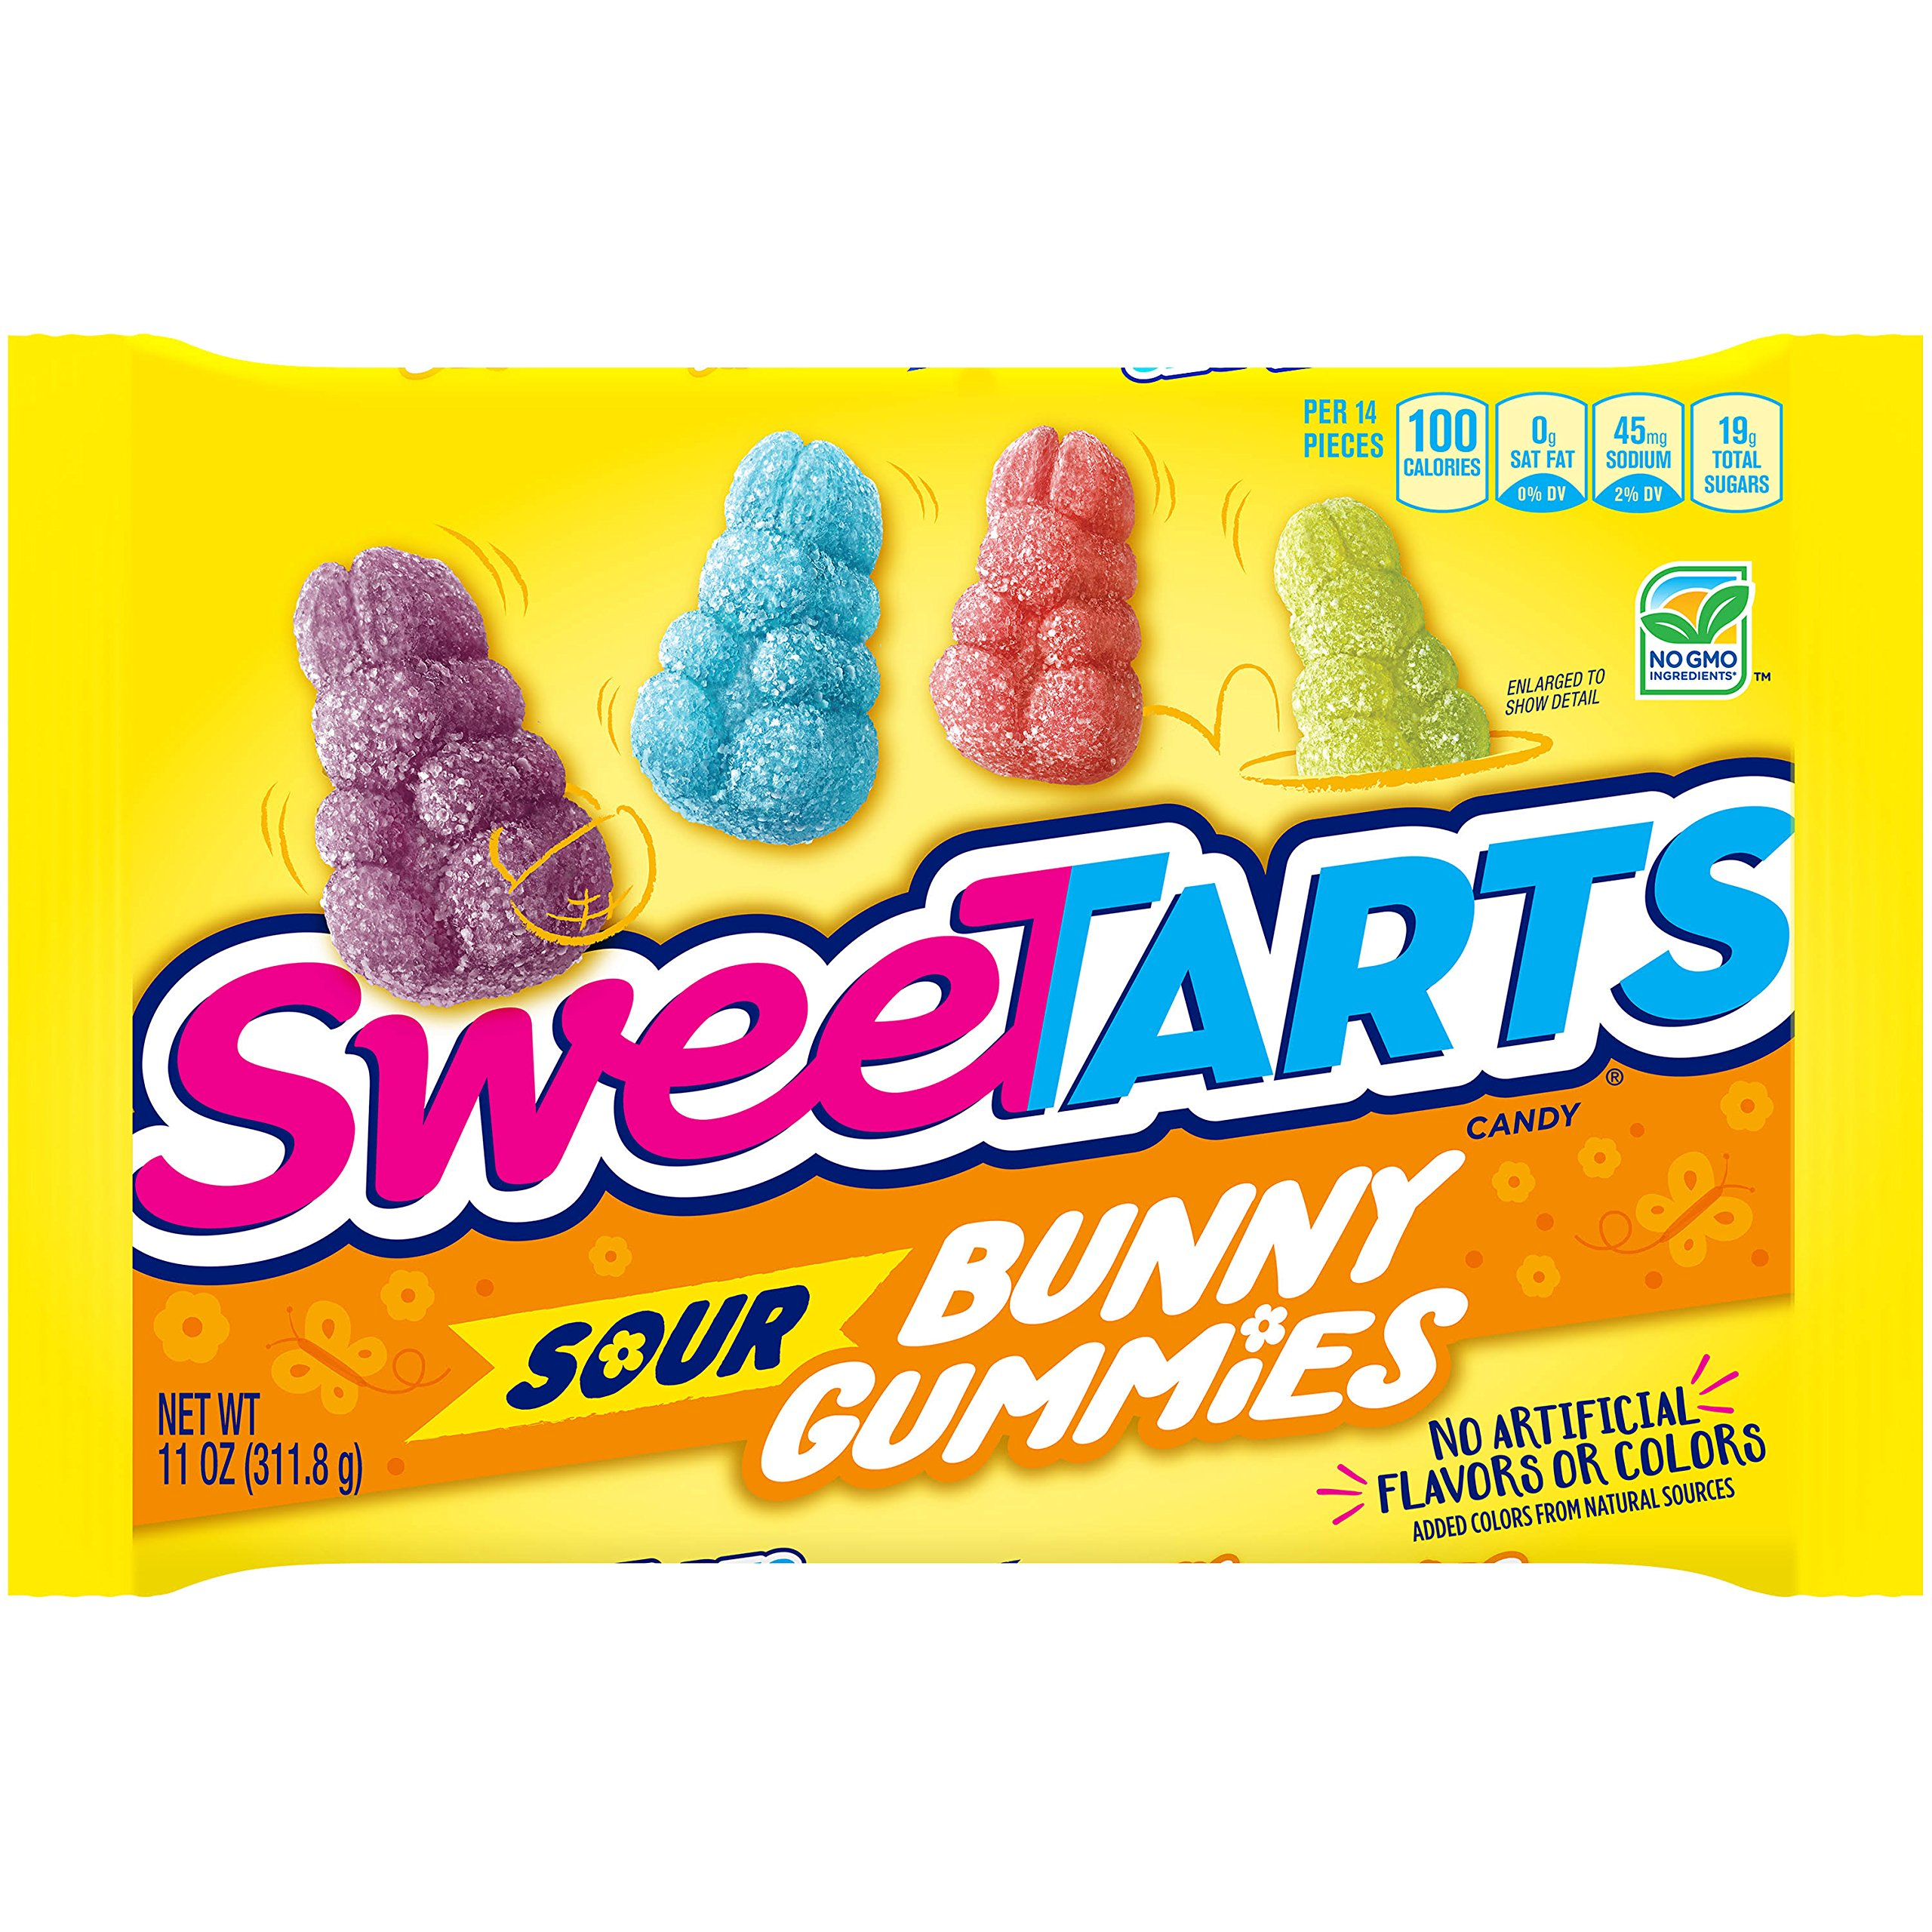 SweeTARTS Sour Bunny Gummy Candy, No Artificial Flavors or Colors, 11-Ounce Bag (Pack of 3)